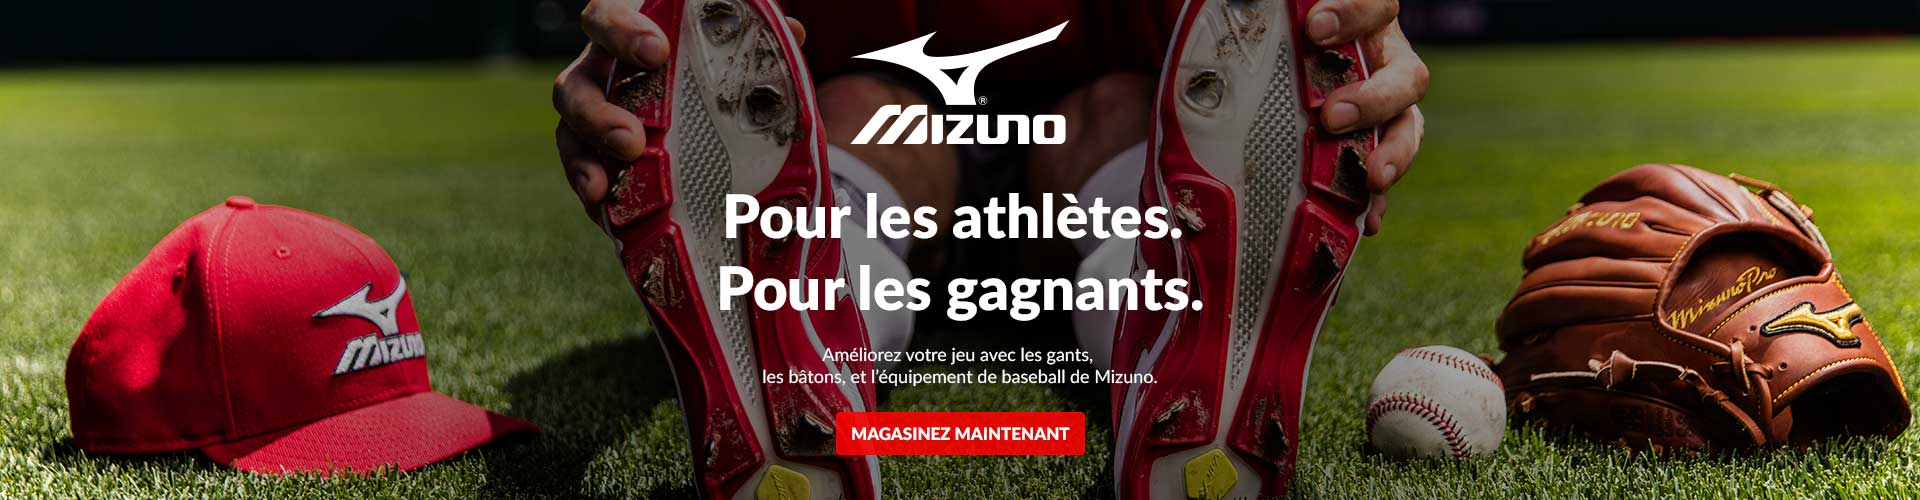 Shop our wide selection of Mizuno Baseball Gloves, Bats, & Equipment available for sale at your local Source For Sports baseball store.